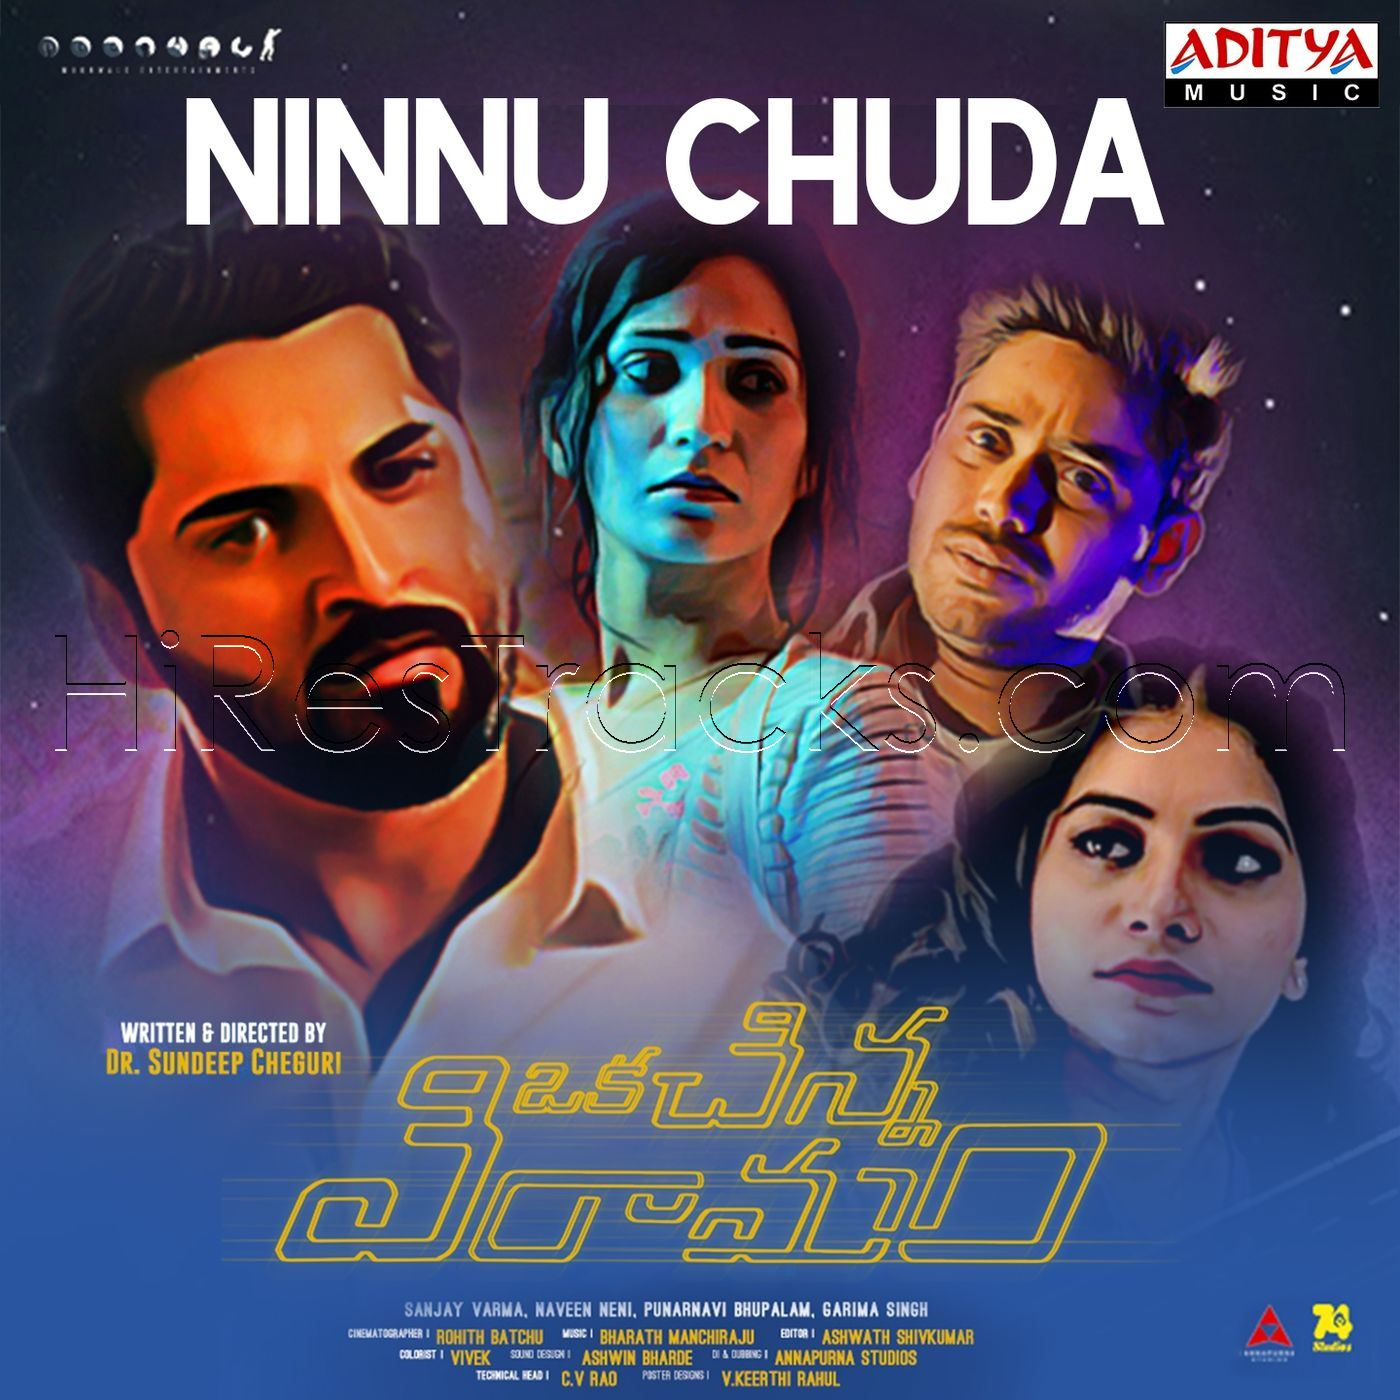 Ninnu Chuda (From Oka Chinna Viramam) (2019) (Bharath Manchiraju) (Aditya Music) [Digital-RIP-FLAC]